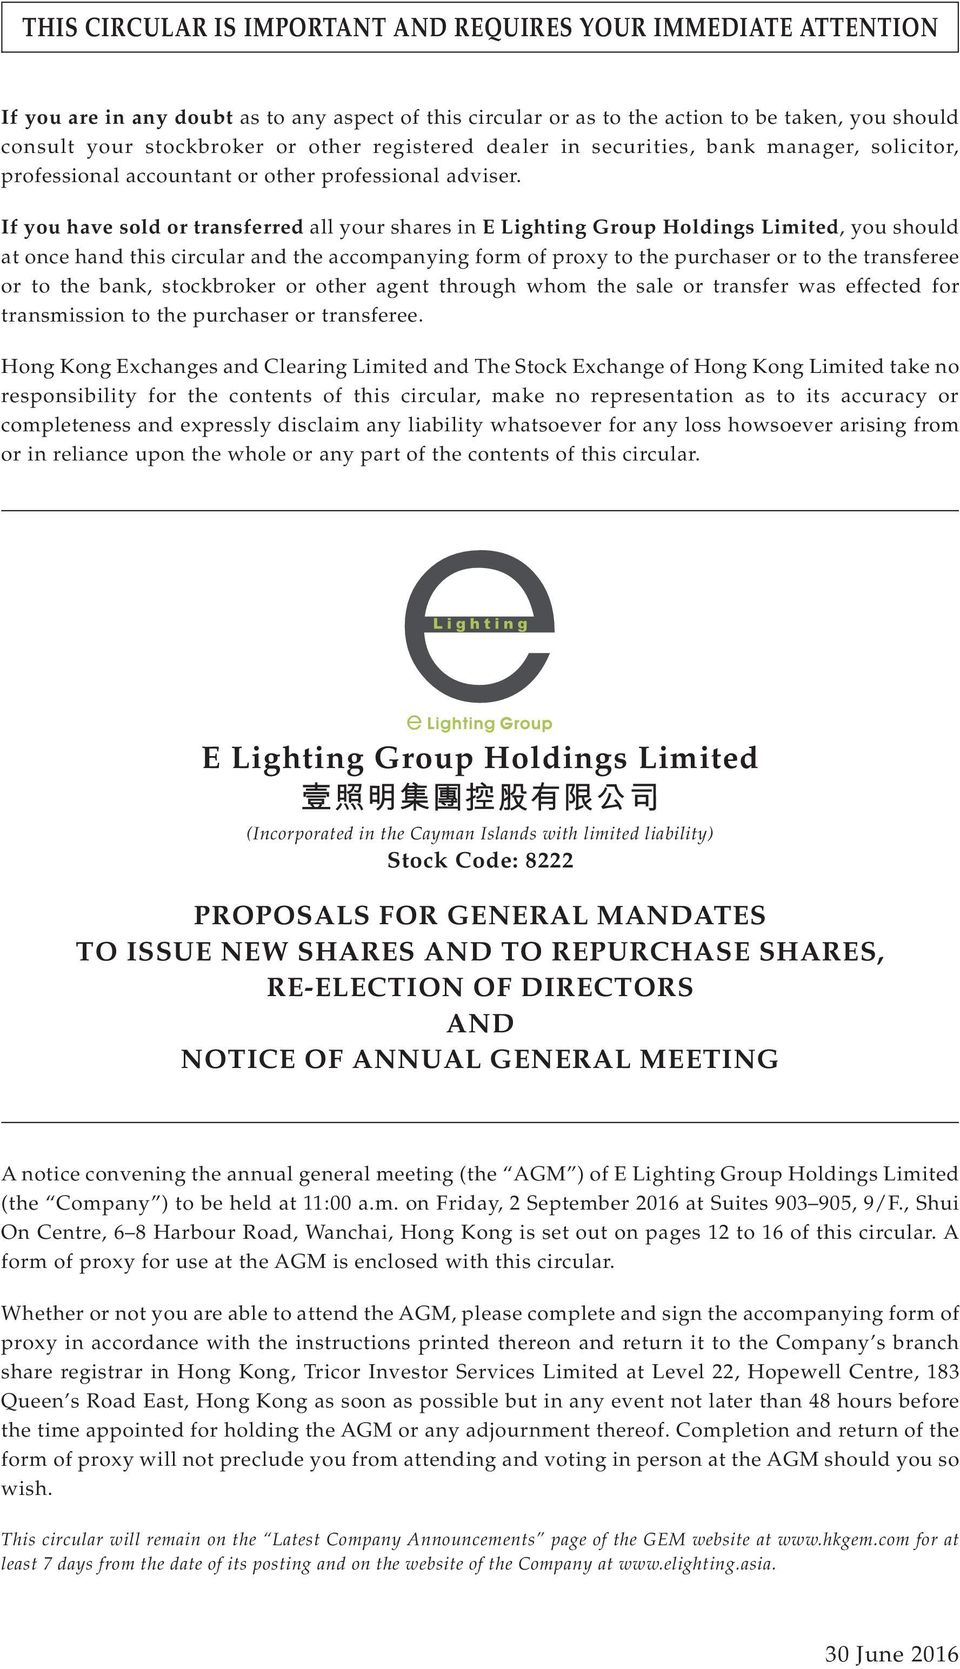 If you have sold or transferred all your shares in E Lighting Group Holdings Limited, you should at once hand this circular and the accompanying form of proxy to the purchaser or to the transferee or